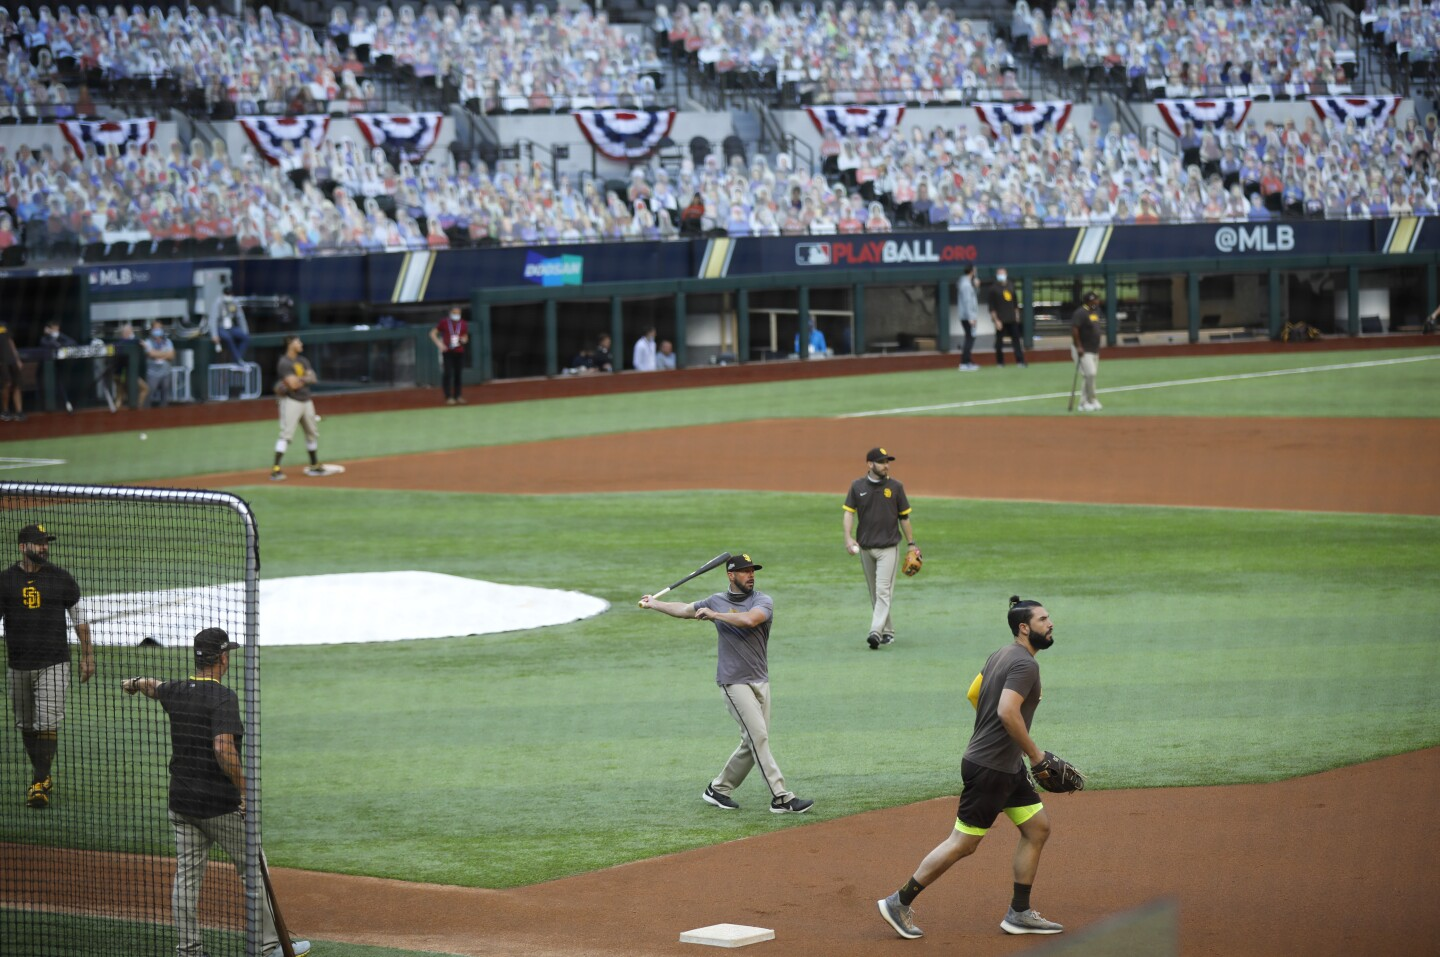 Managers Jayce Tingler of the San Diego hits balls during a practice for the NLDS at Globe Life Field in Arlington, Texas on Monday, Oct. 5, 2020. (K.C. Alfred / The San Diego Union-Tribune)